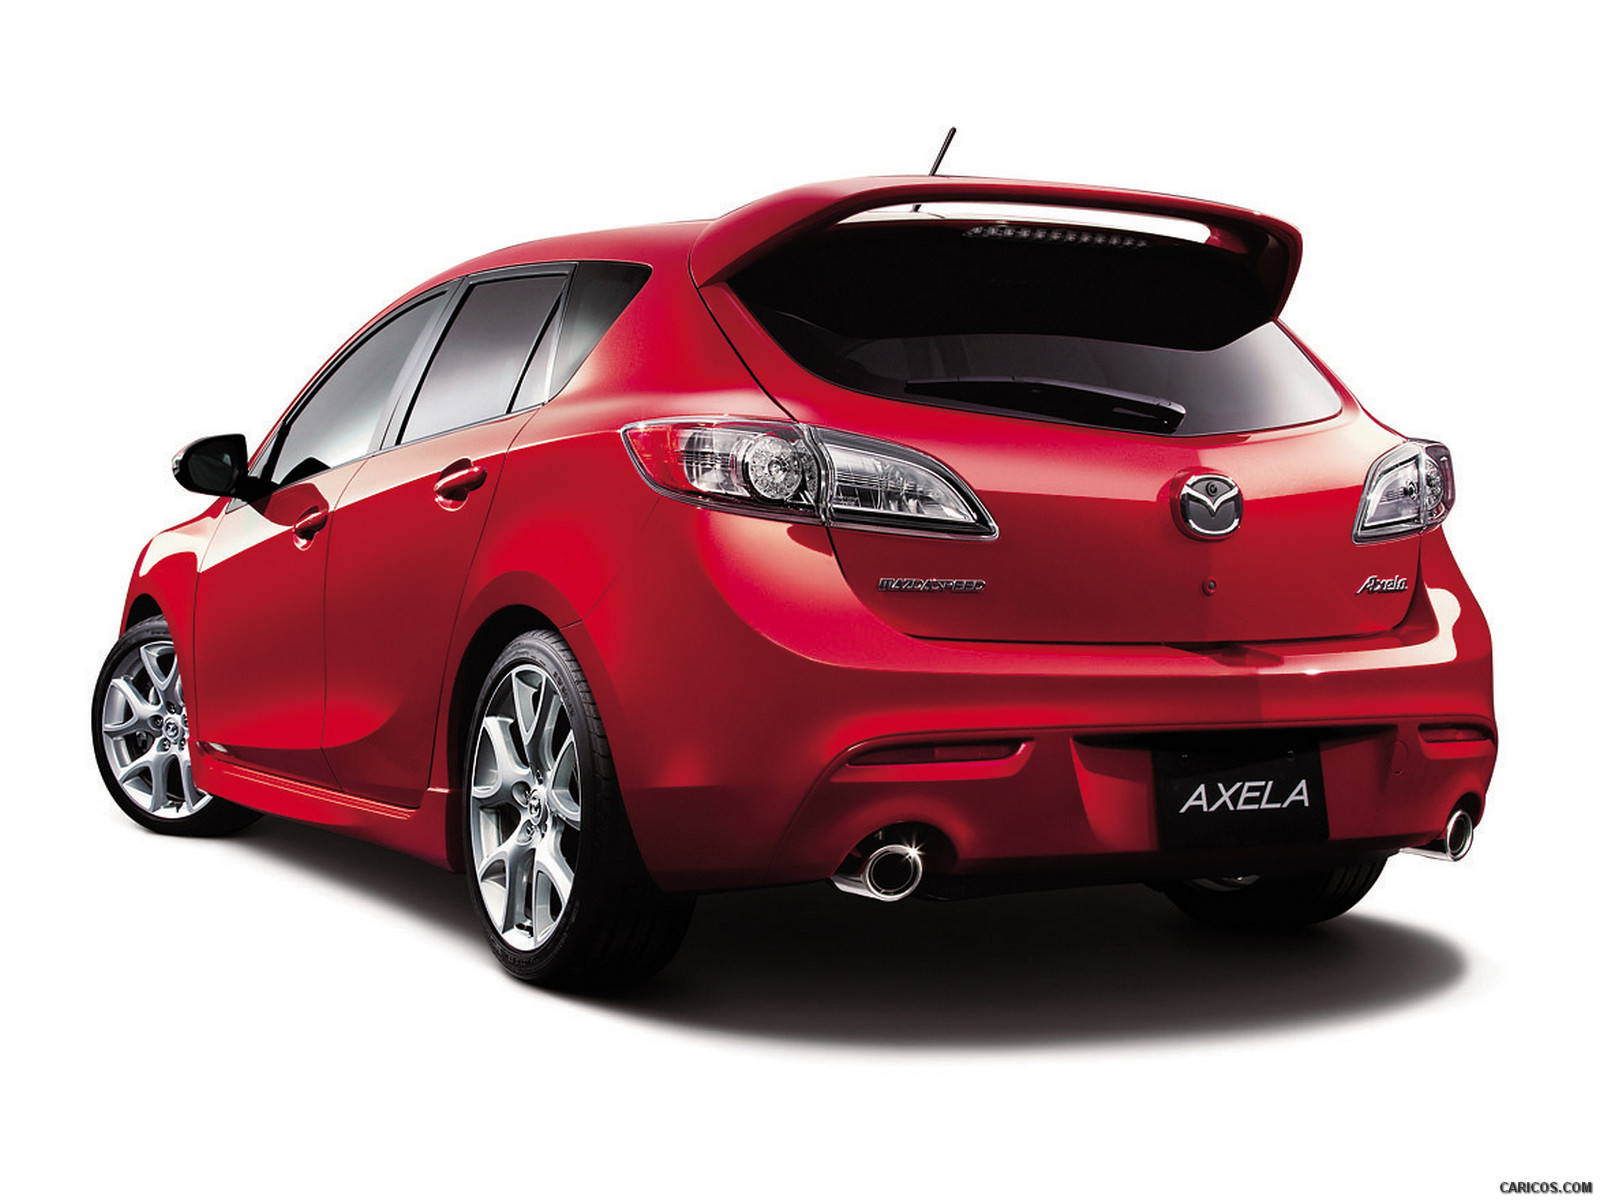 2012 Mazda MazdaSpeed 3   Rear Wallpaper 3 1600x1200